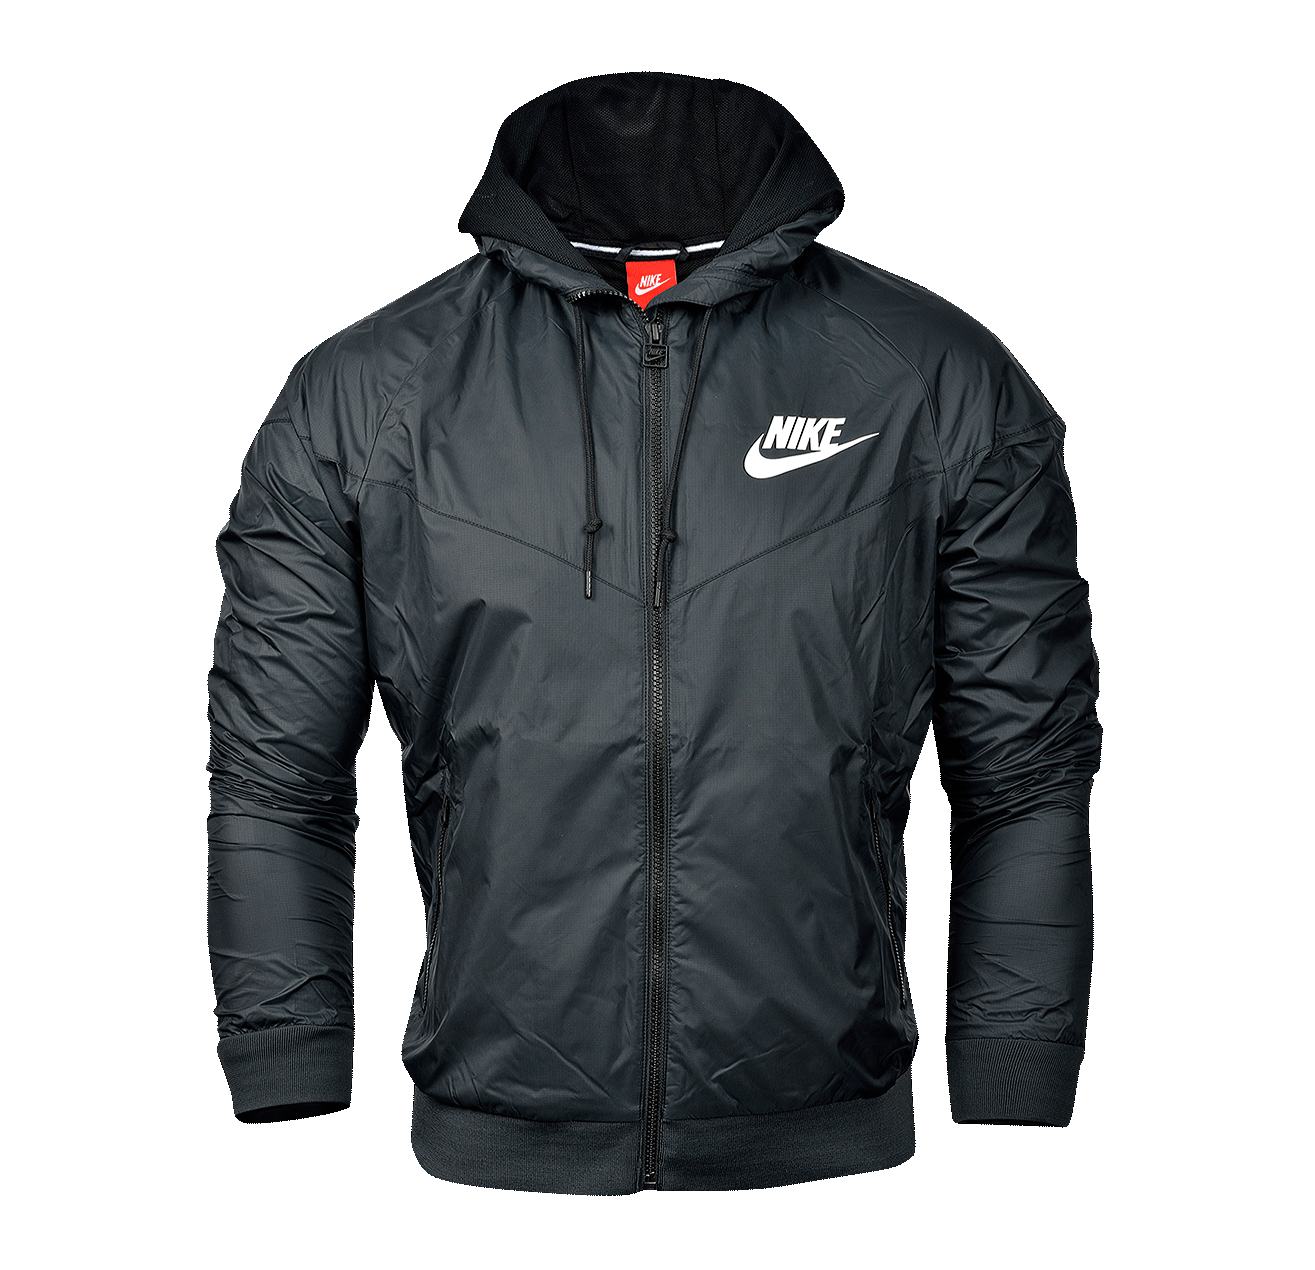 9e13bb22 NIKE WINDRUNNER JACKET - Foot Locker | Clothes | Nike windrunner ...